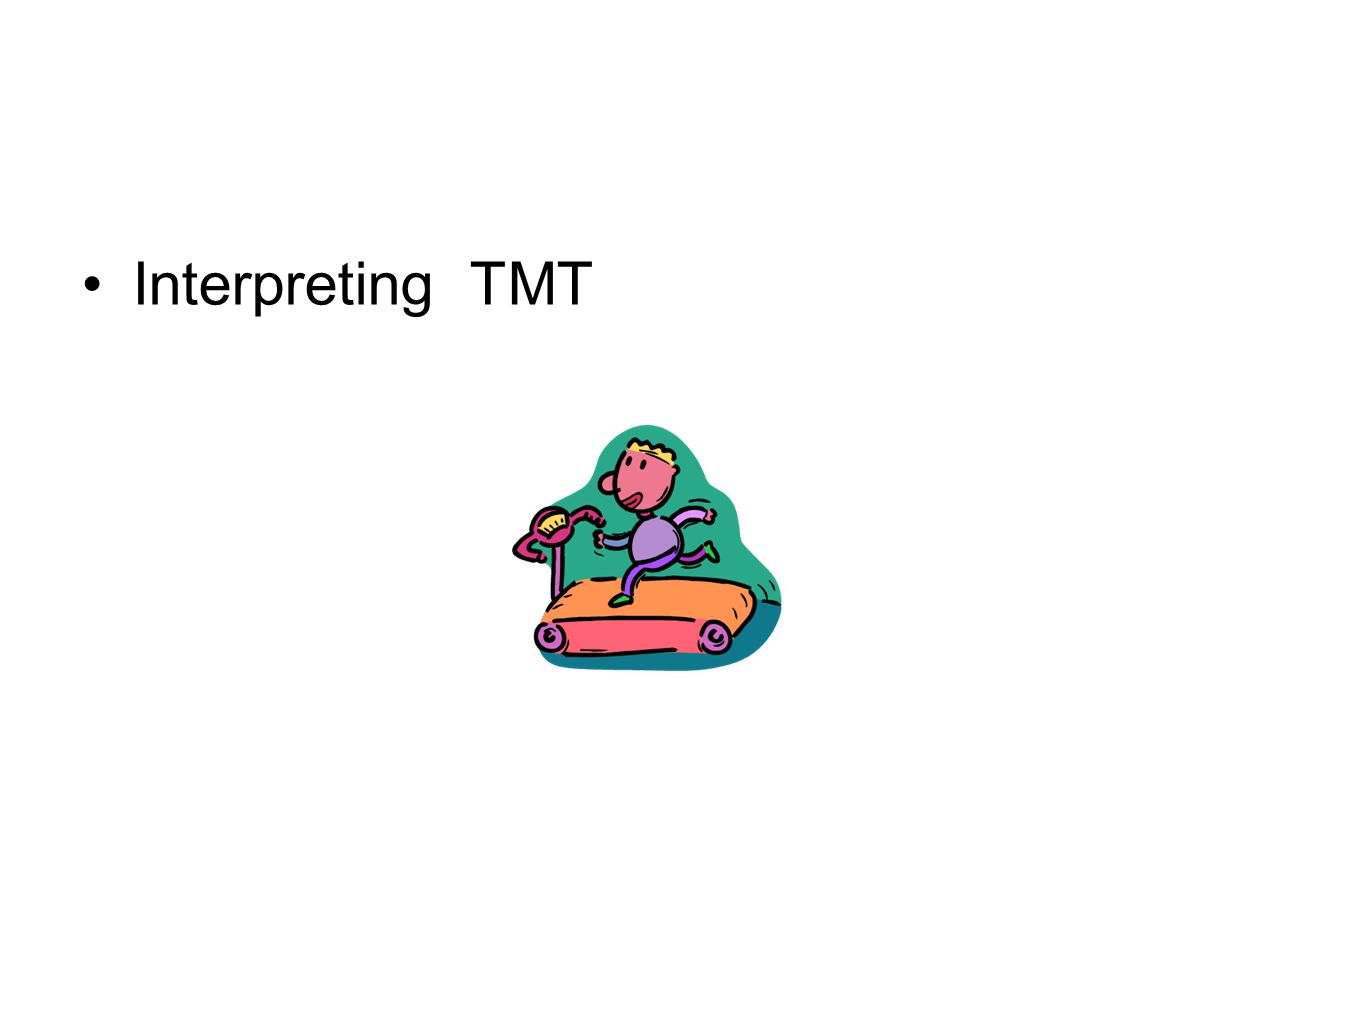 Interpreting TMT